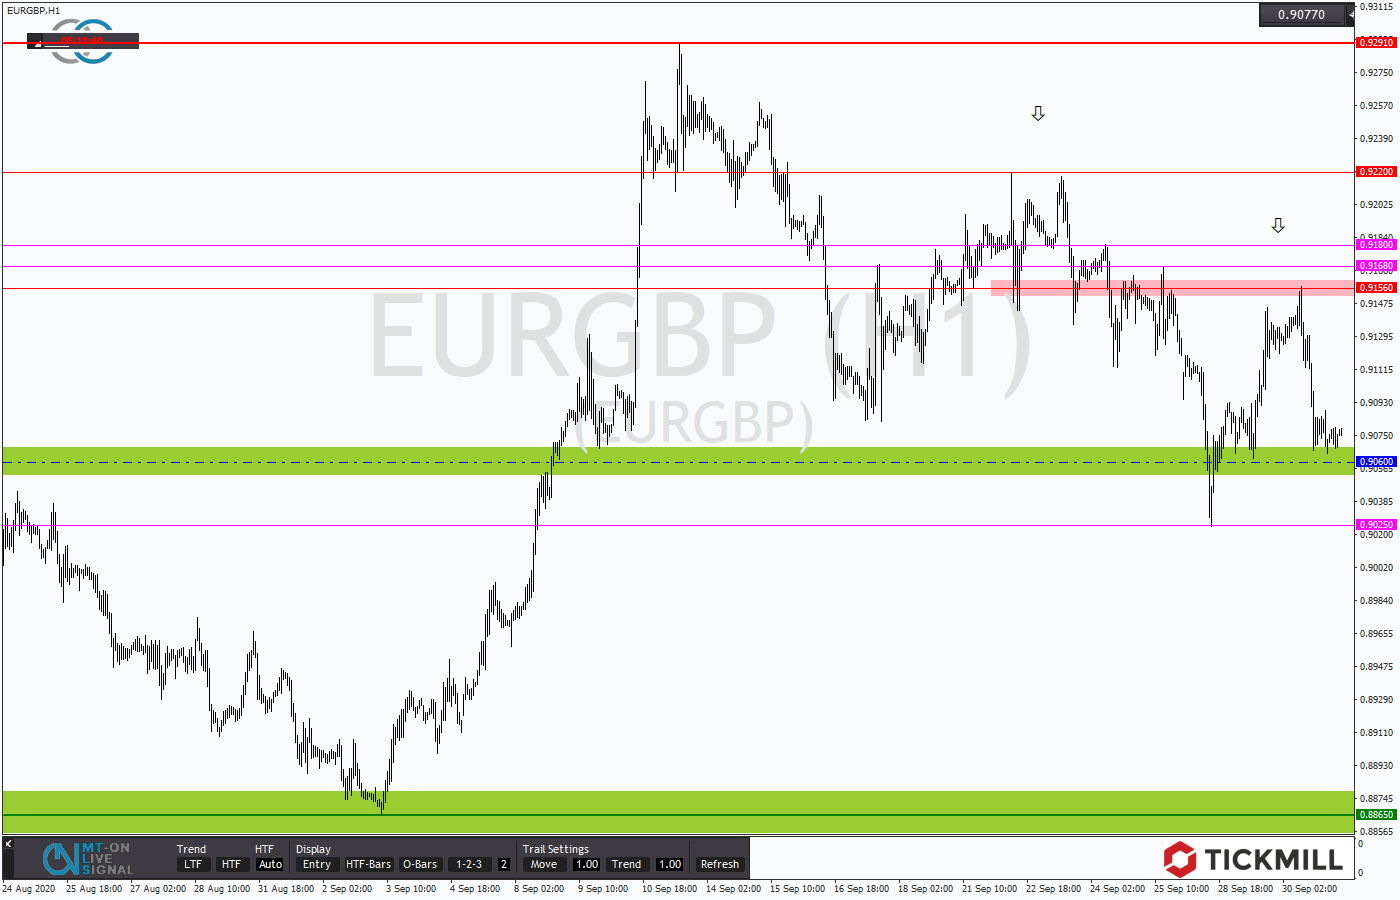 Tickmill-Analyse: EURGBP im Stundentrend